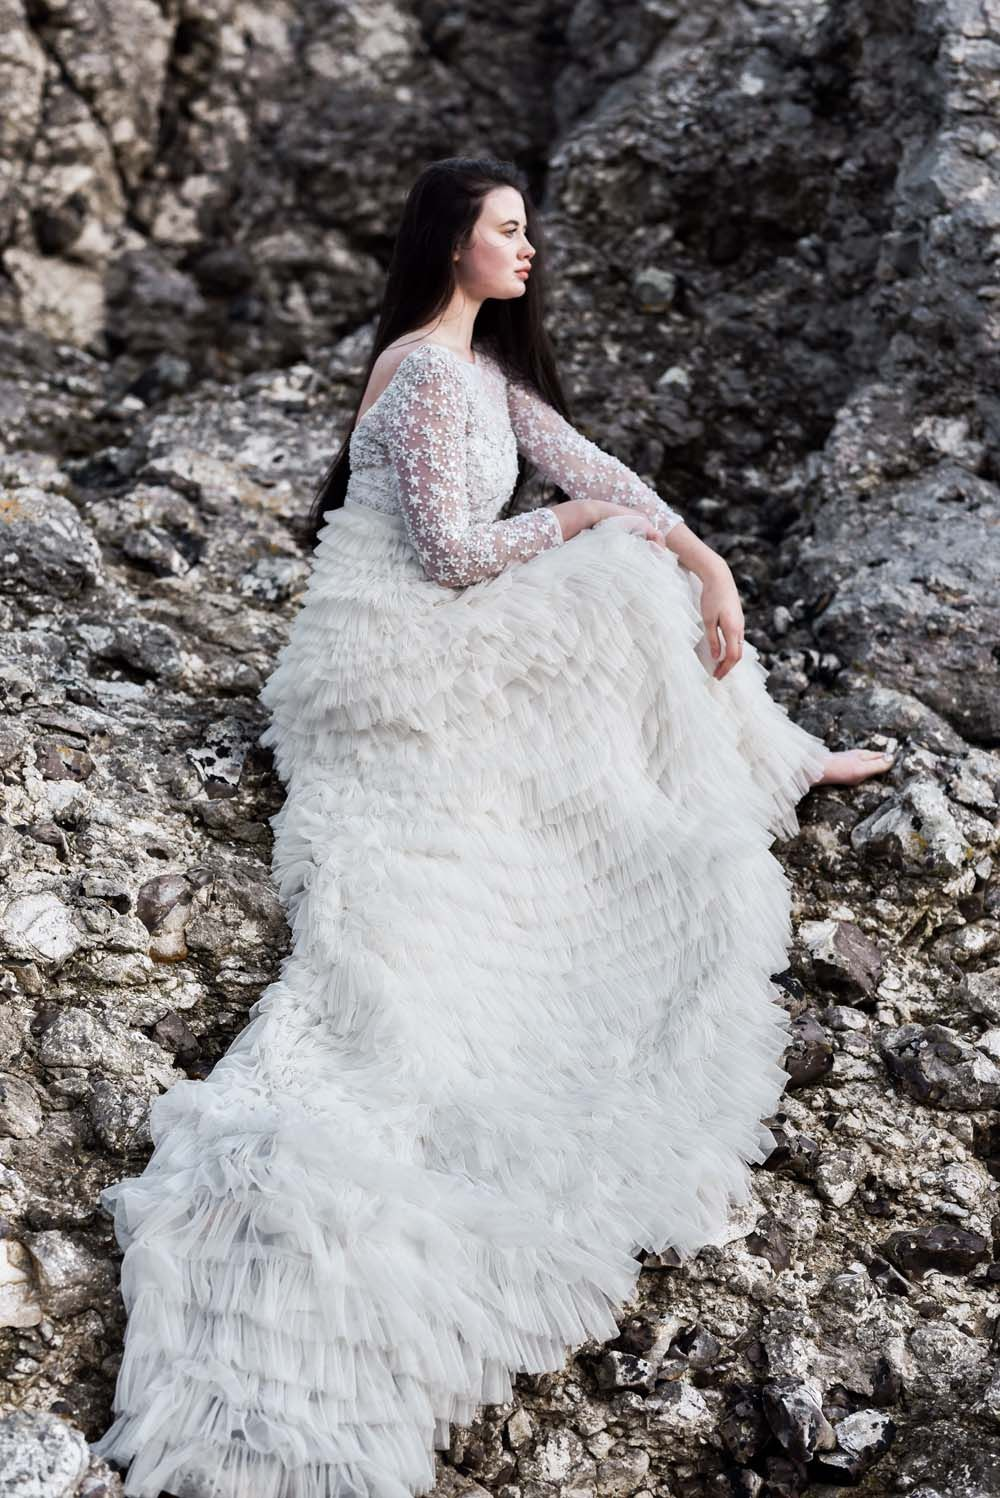 Moody Ethereal Wedding Ideas At The Dark Hedges As Featured In The Game Of Thrones Ethereal Wedding Wedding Dress Styles Beautiful Wedding Gowns